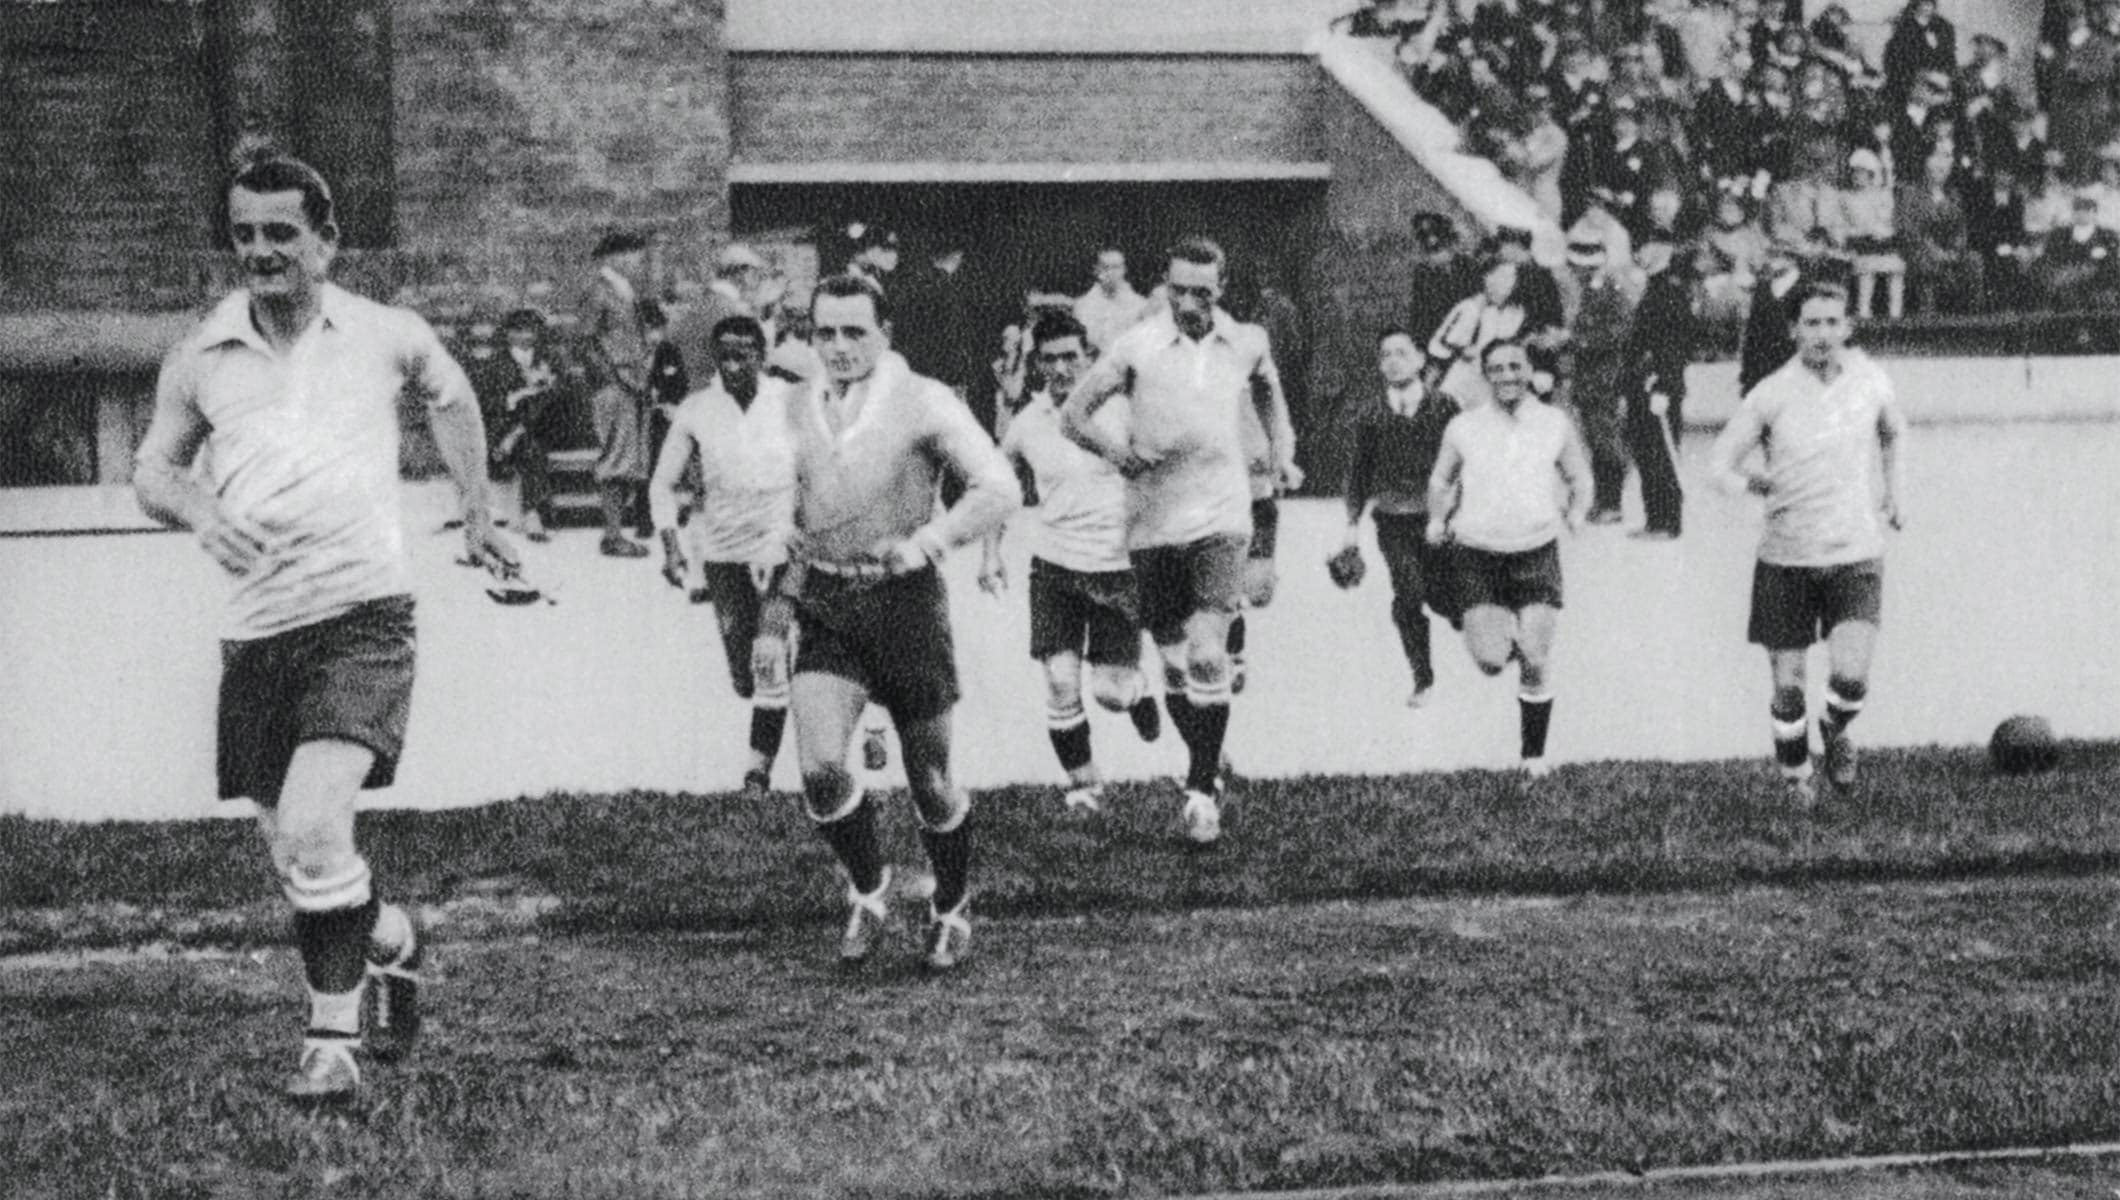 In Amsterdam in 1928, the football masters were Uruguayan - Olympic News